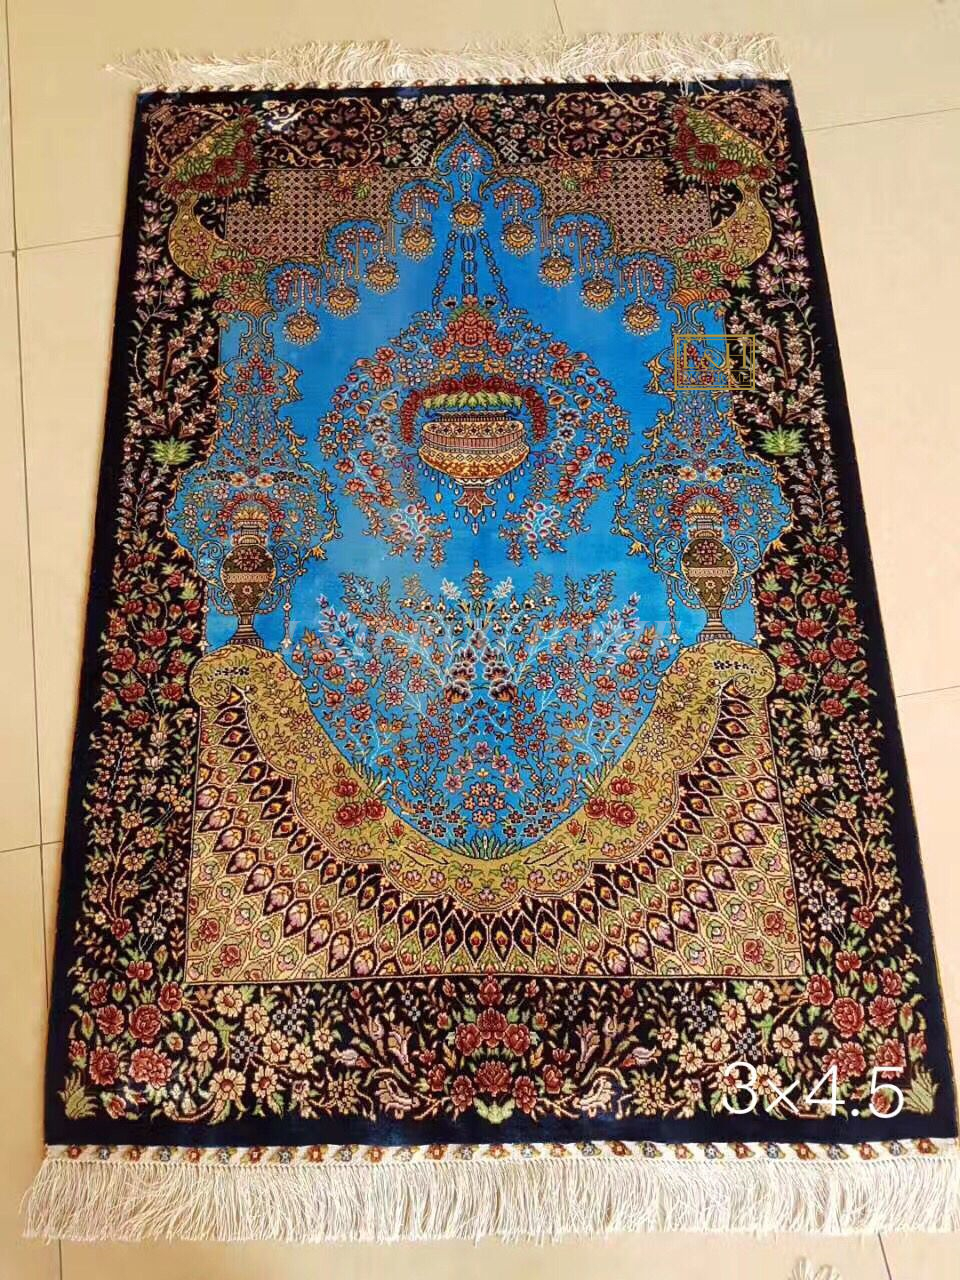 Free shipping 3X4.5 230 Line Handmade Silk Oriental Persian Rug hand Knotted silk carpet for home decorationFree shipping 3X4.5 230 Line Handmade Silk Oriental Persian Rug hand Knotted silk carpet for home decoration